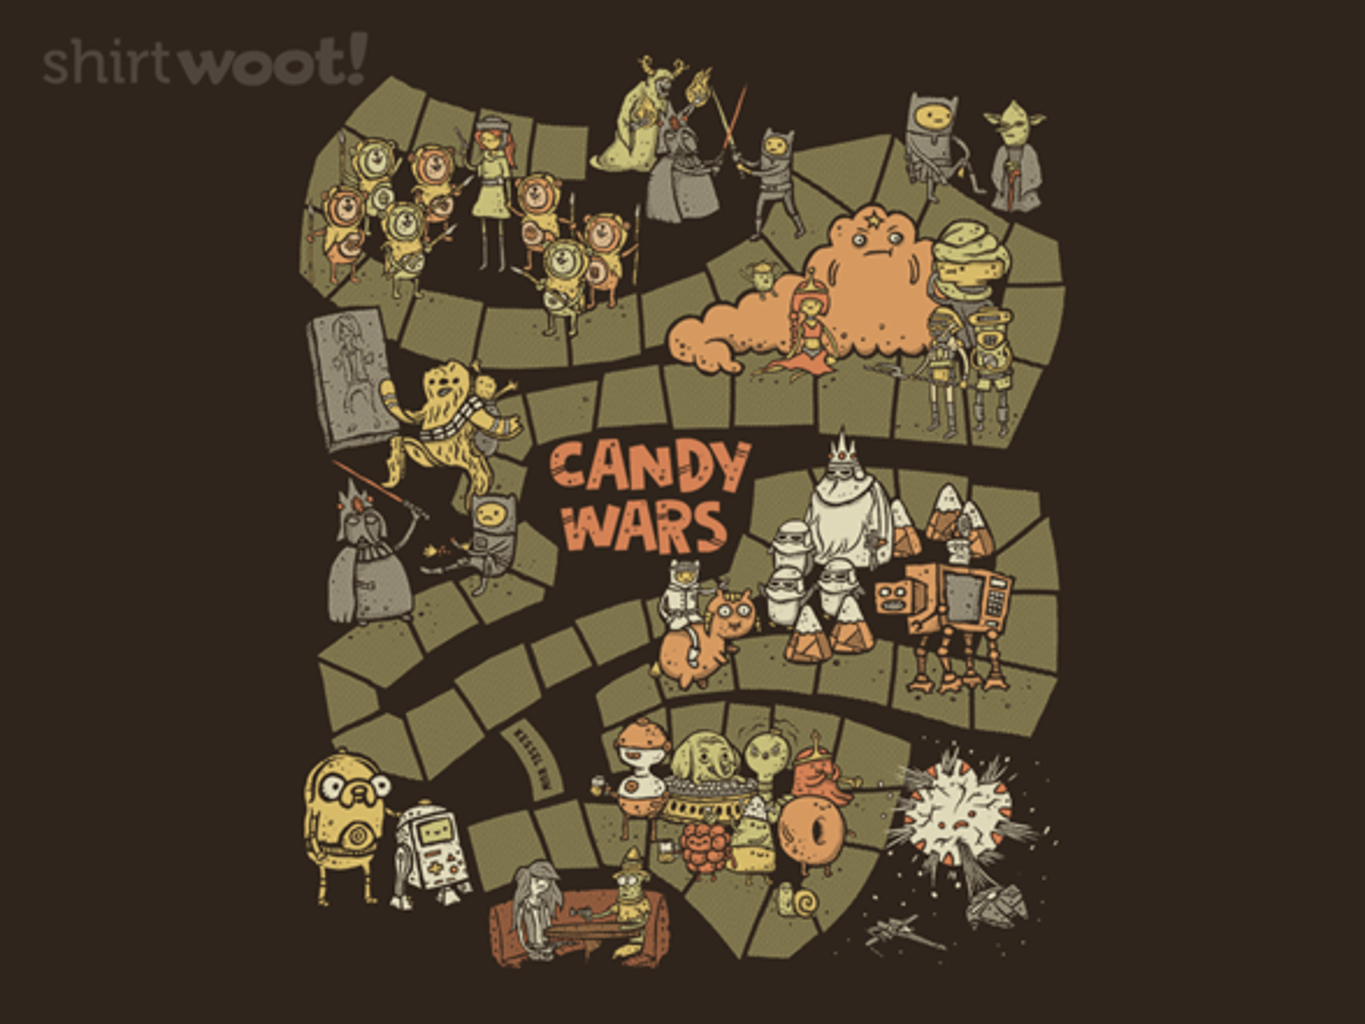 Woot!: Candy Wars: The Game - $15.00 + Free shipping